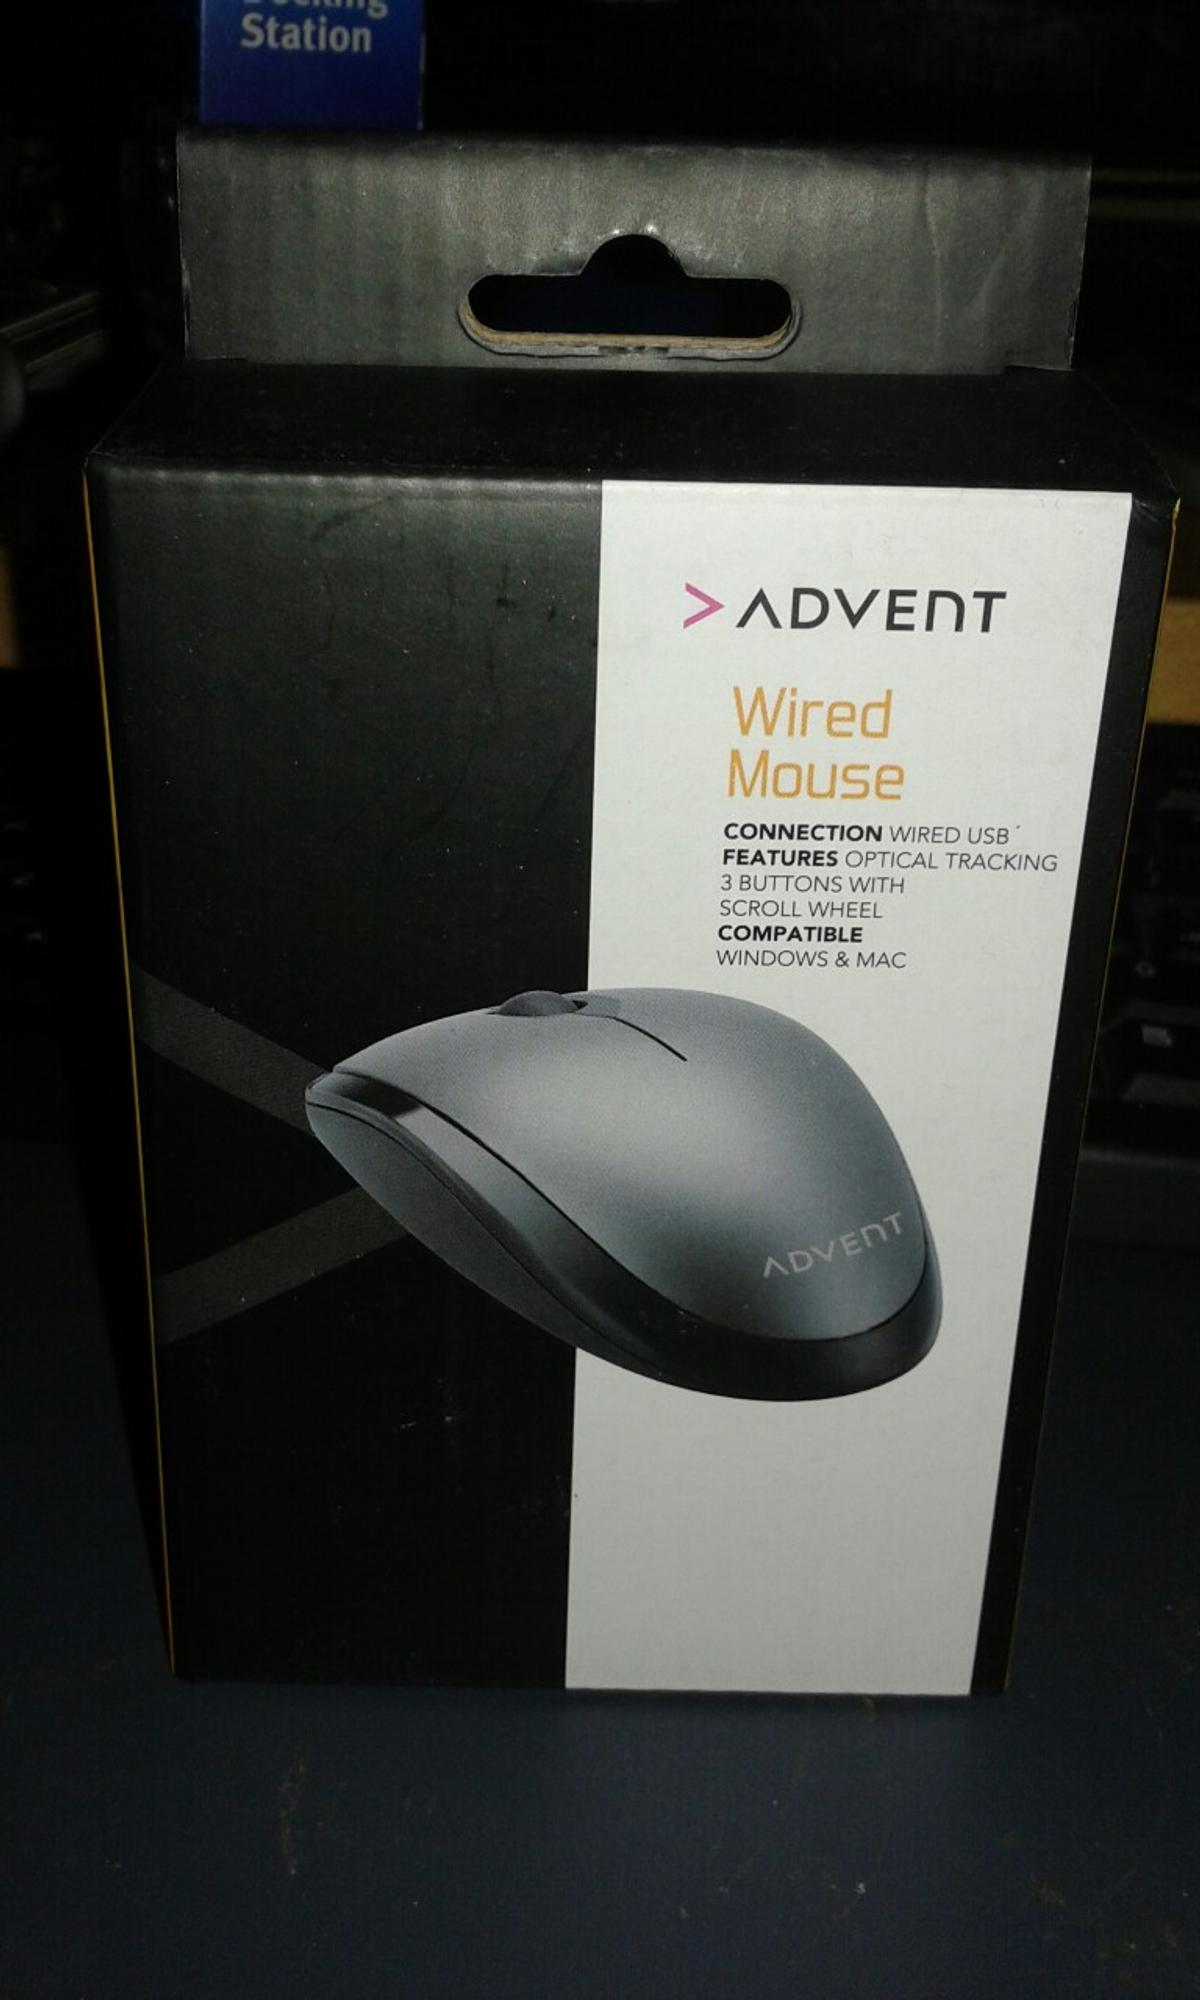 ADVENT MOUSE DRIVERS WINDOWS 7 (2019)